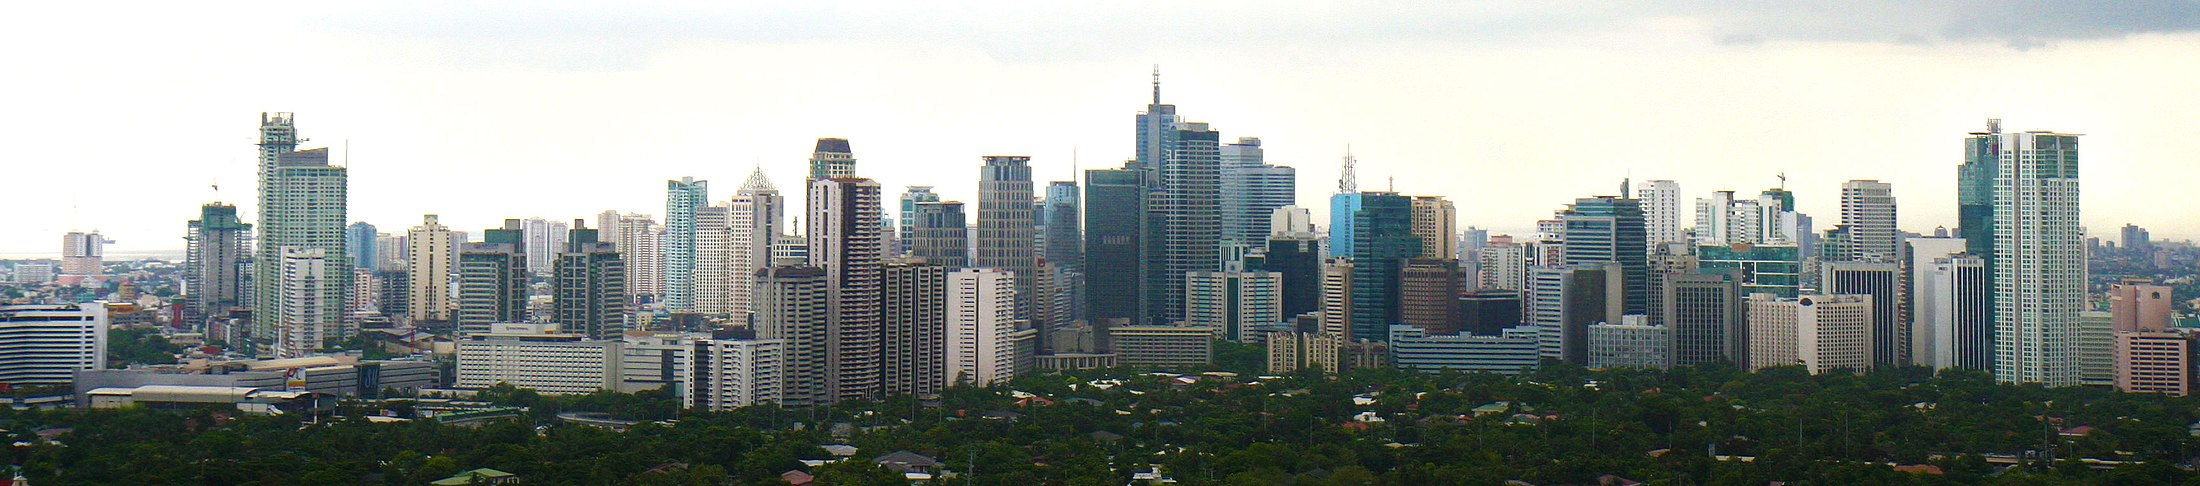 Makati, in Metro Manila, is the country's leading financial center. (2009) - Philippines